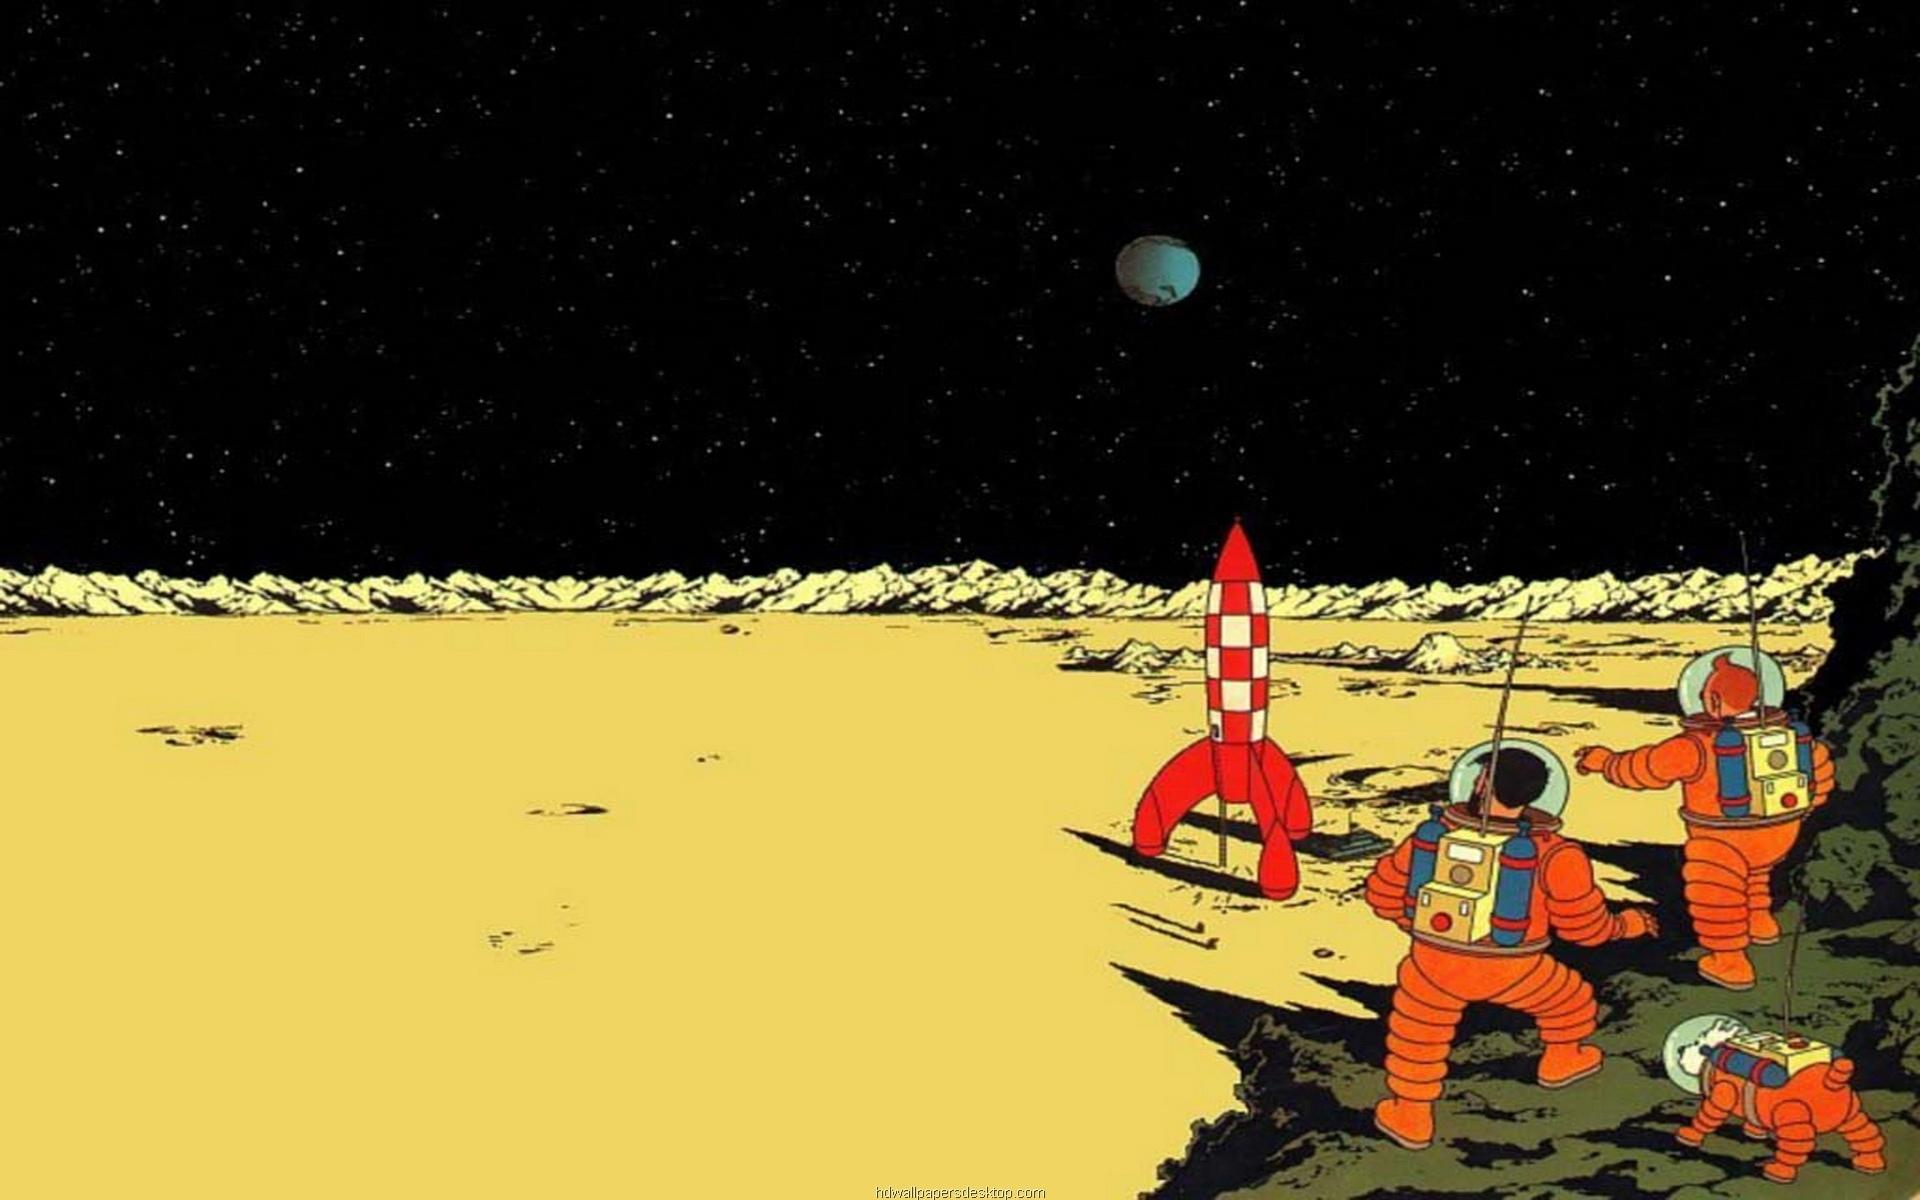 The Adventures Of Tintin at 1024 x 1024 iPad size wallpapers HD quality